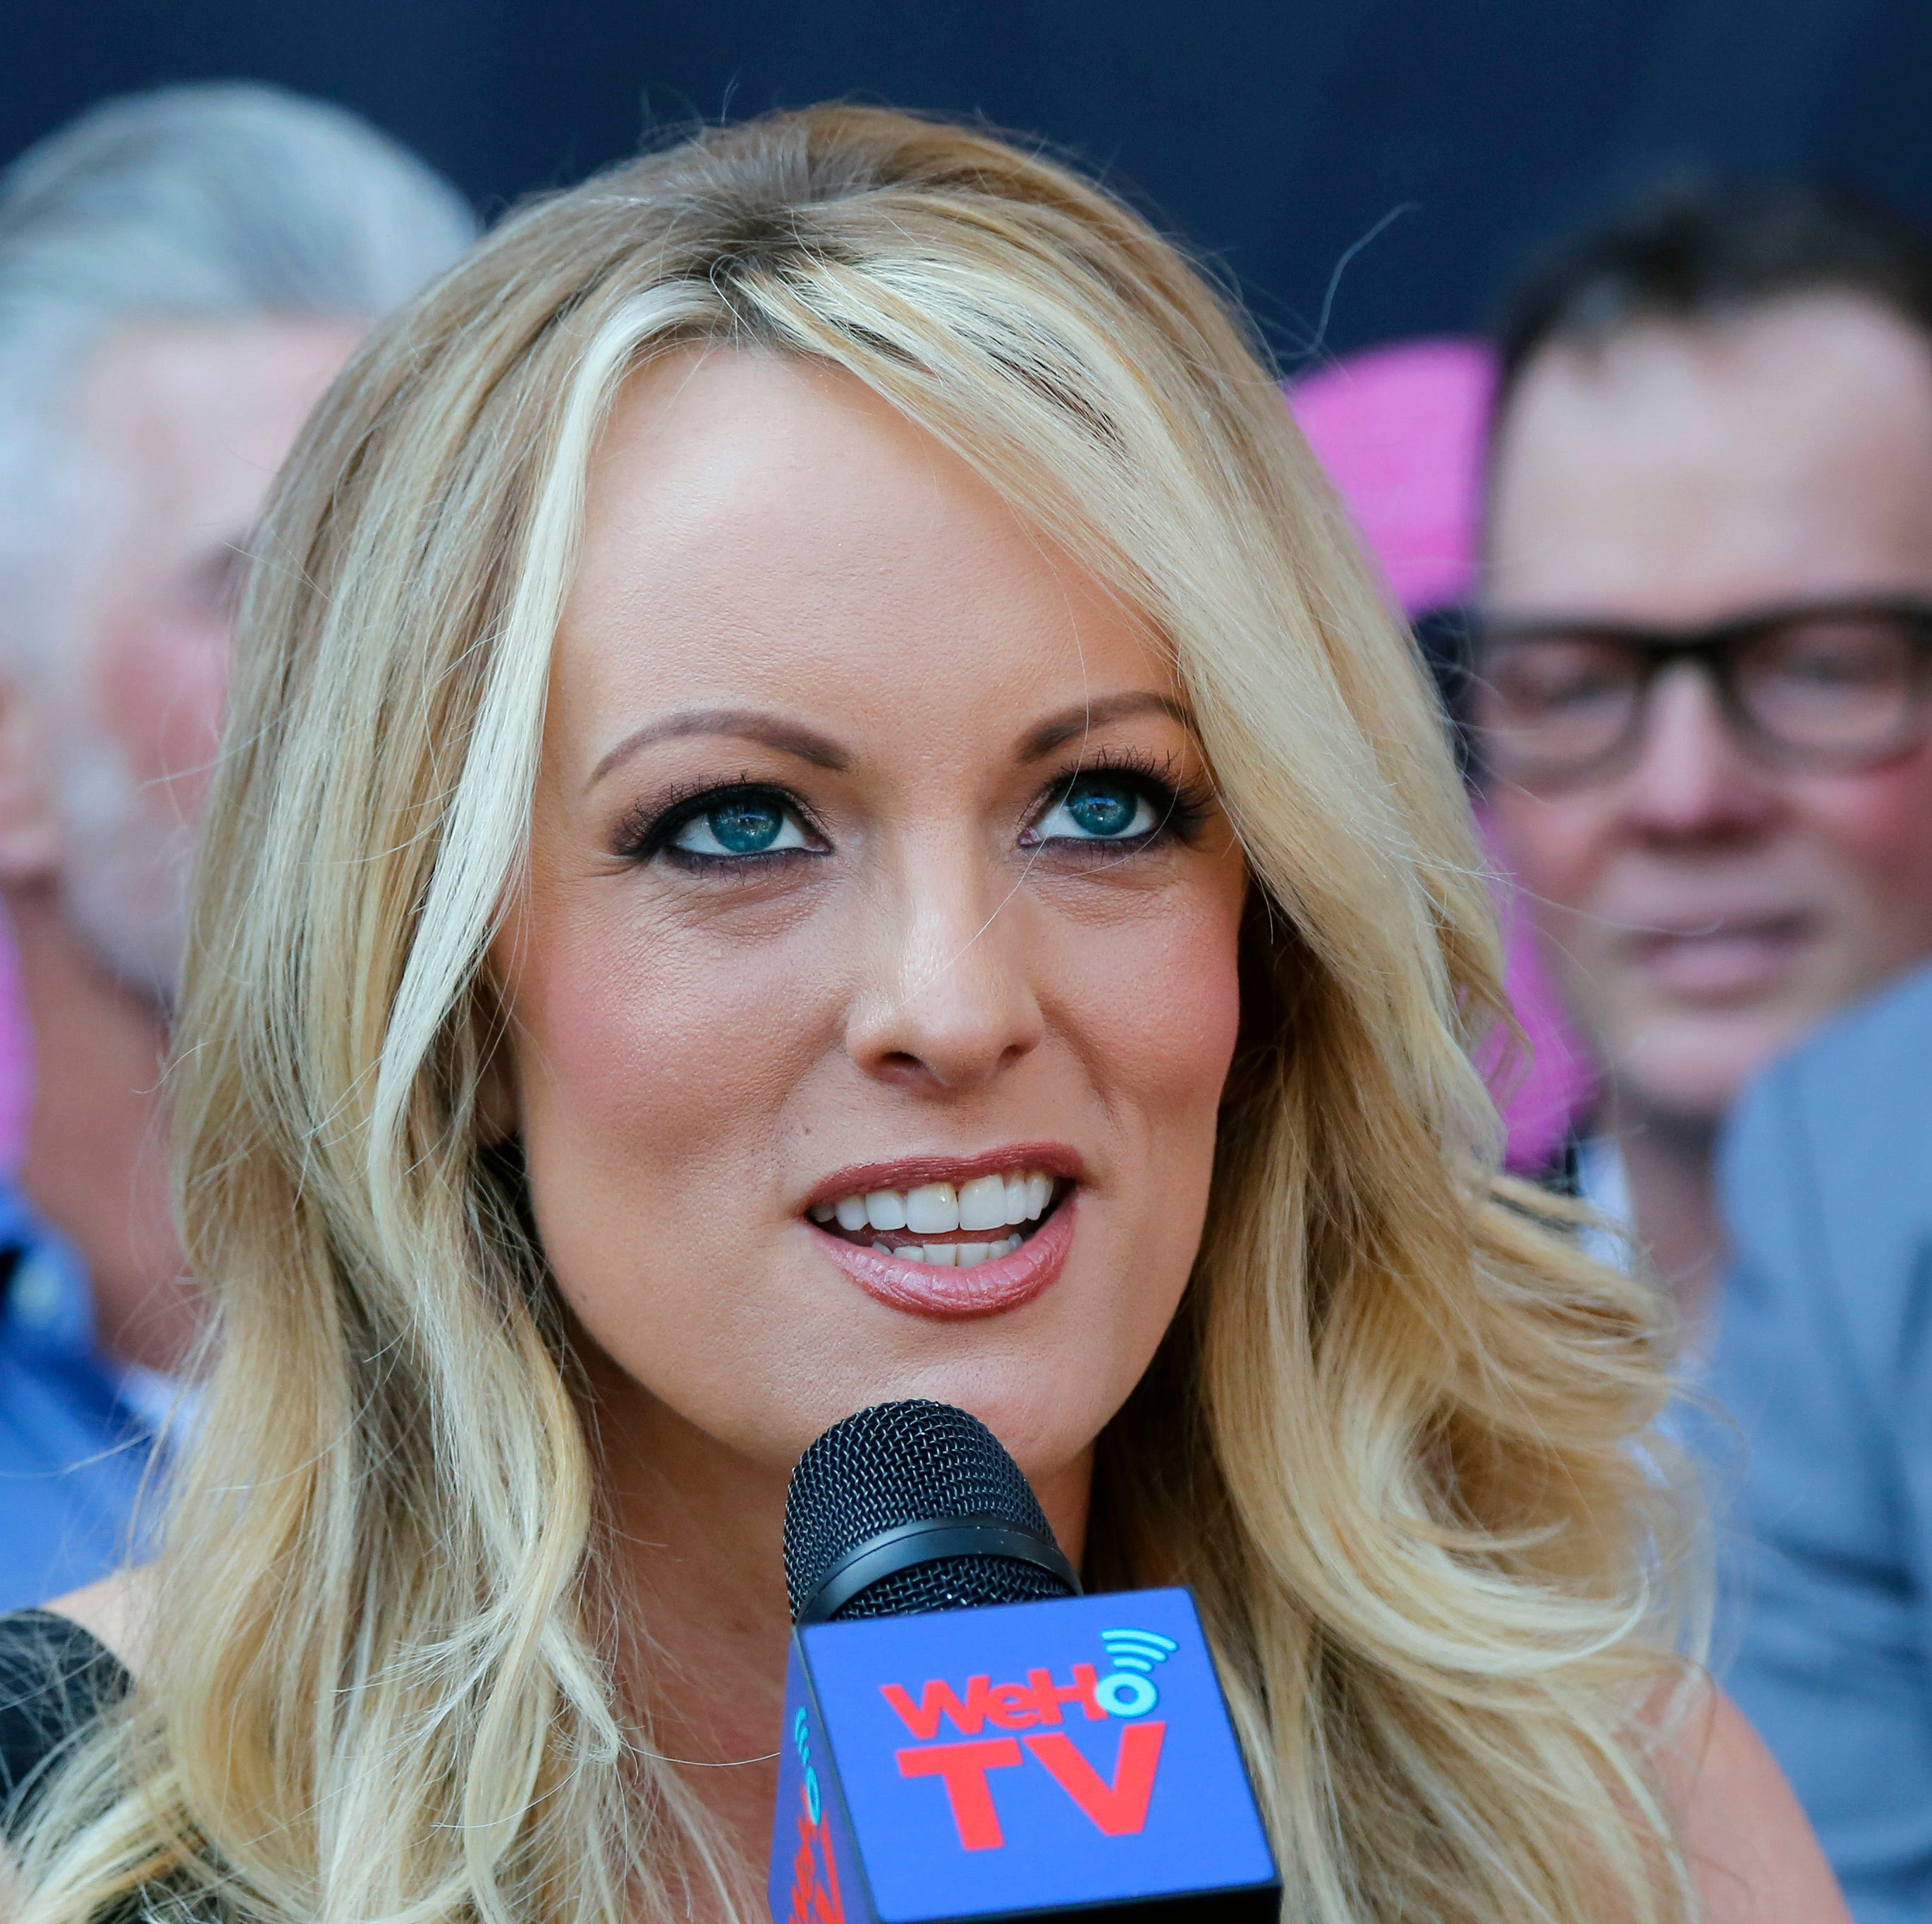 Stormy Daniels, the adult film actress and nemesis of U.S. President Donald Trump, has pulled out of a British reality-TV show at the last minute after a dispute with producers, according to information released Friday Aug. 17, 2018.